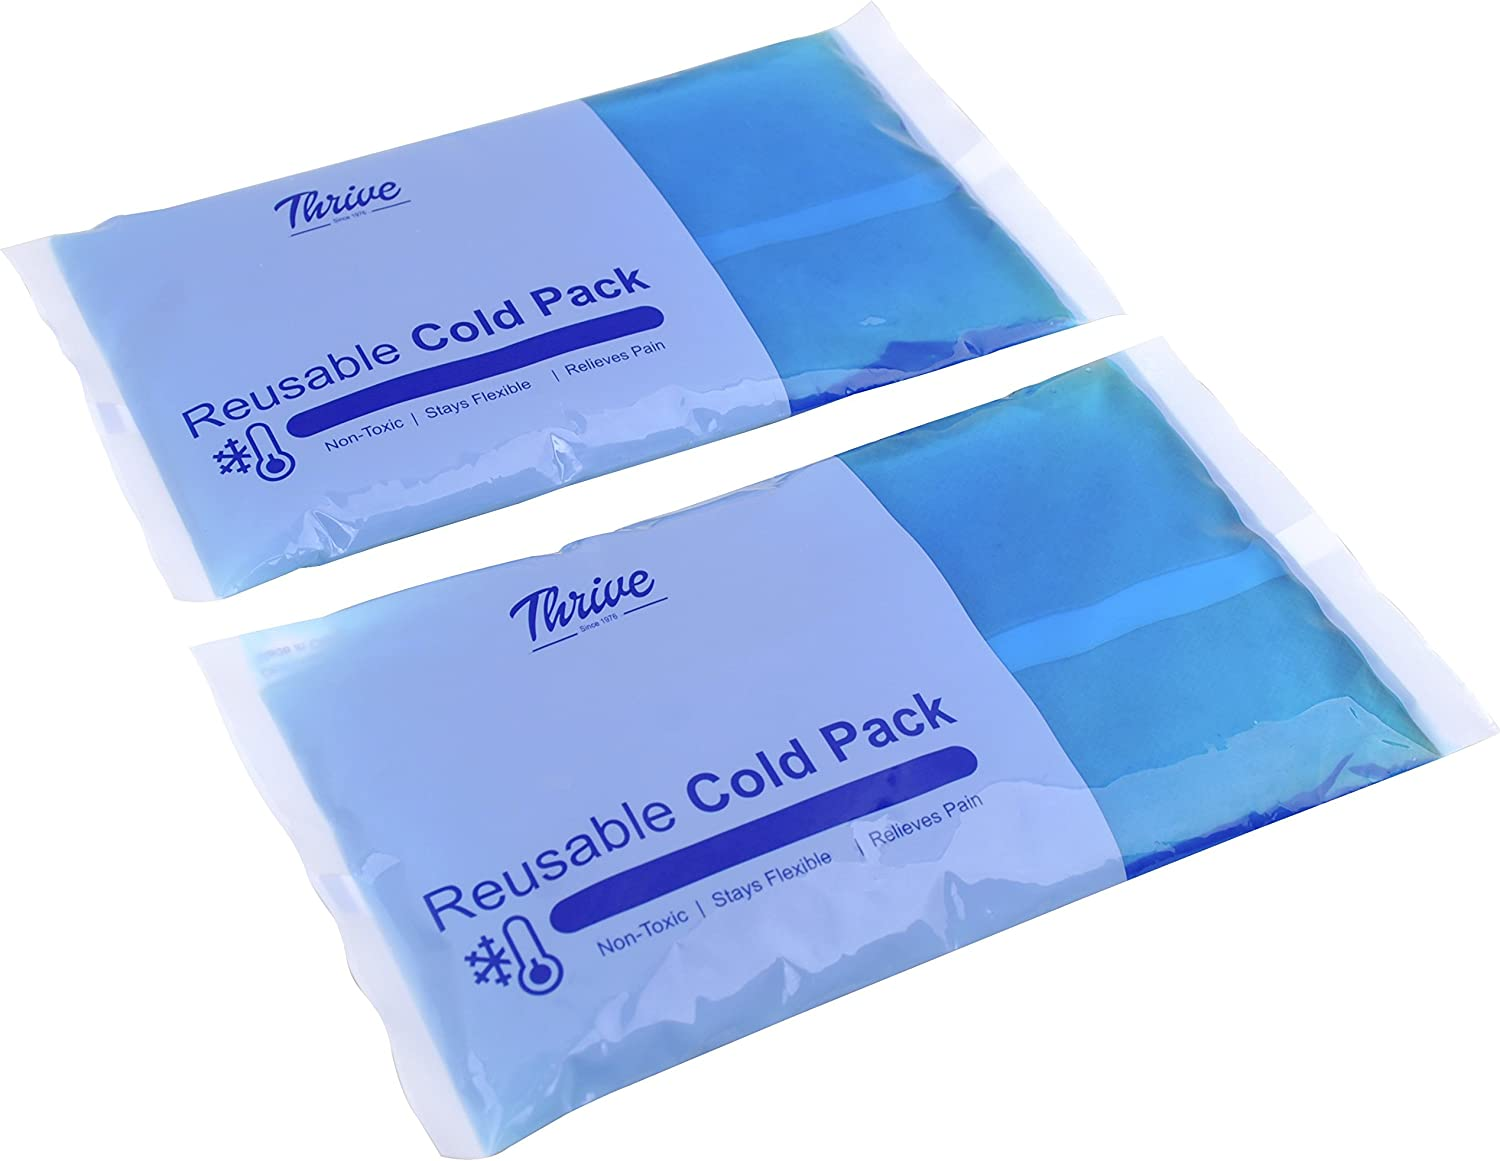 "Reusable Gel Ice Cold Pack Compress – (2 Pack) – 5"" x 9.5"" - Reusable Vinyl Provides Instant Pain Relief, Rehabilitation and Therapy from Injuries Like Shoulder, Back, Knee, Neck, Ankle"